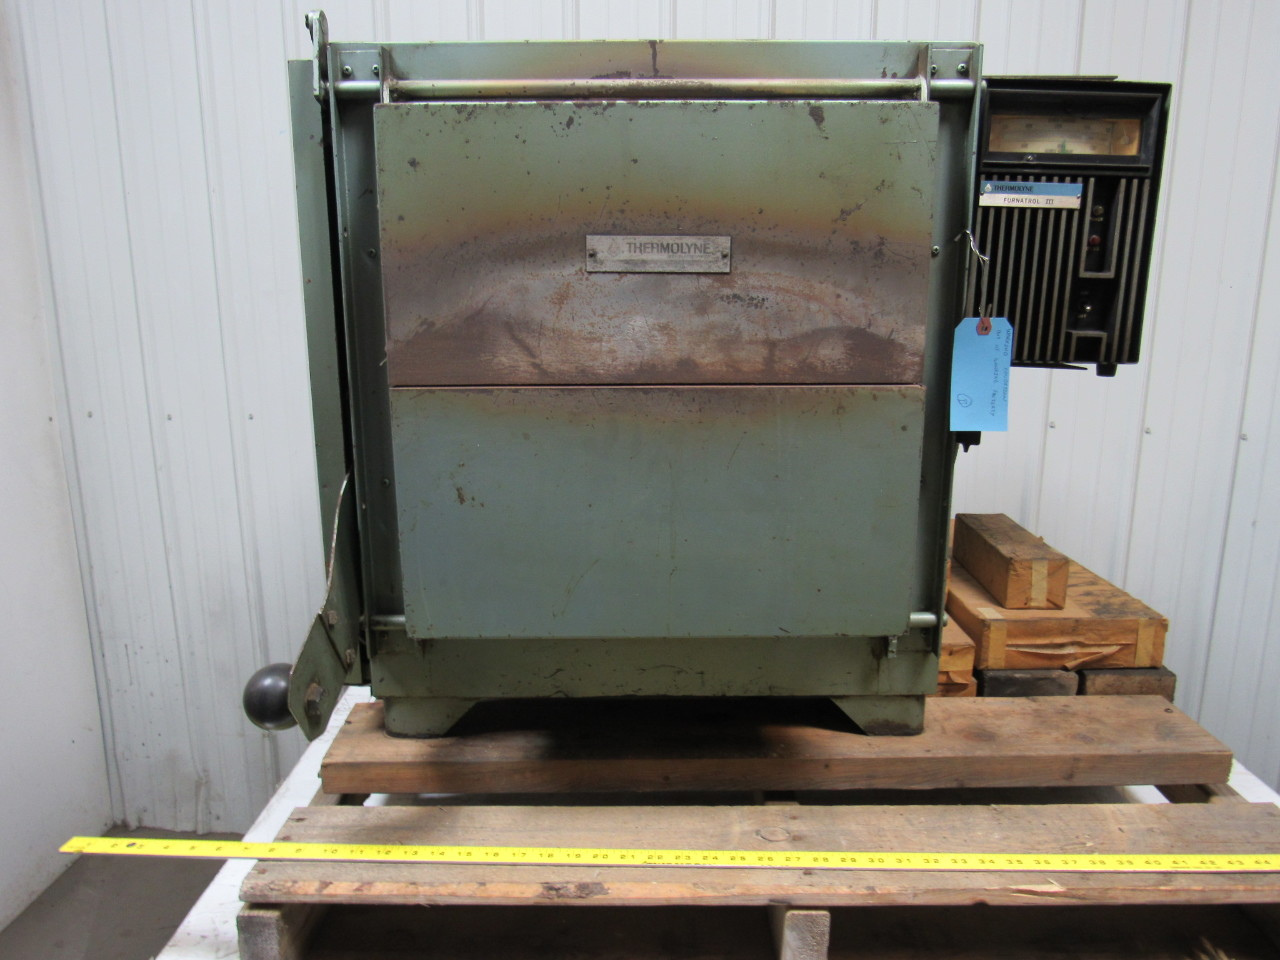 Heat Treating Oven : Thermolyne f electric oven v ph w